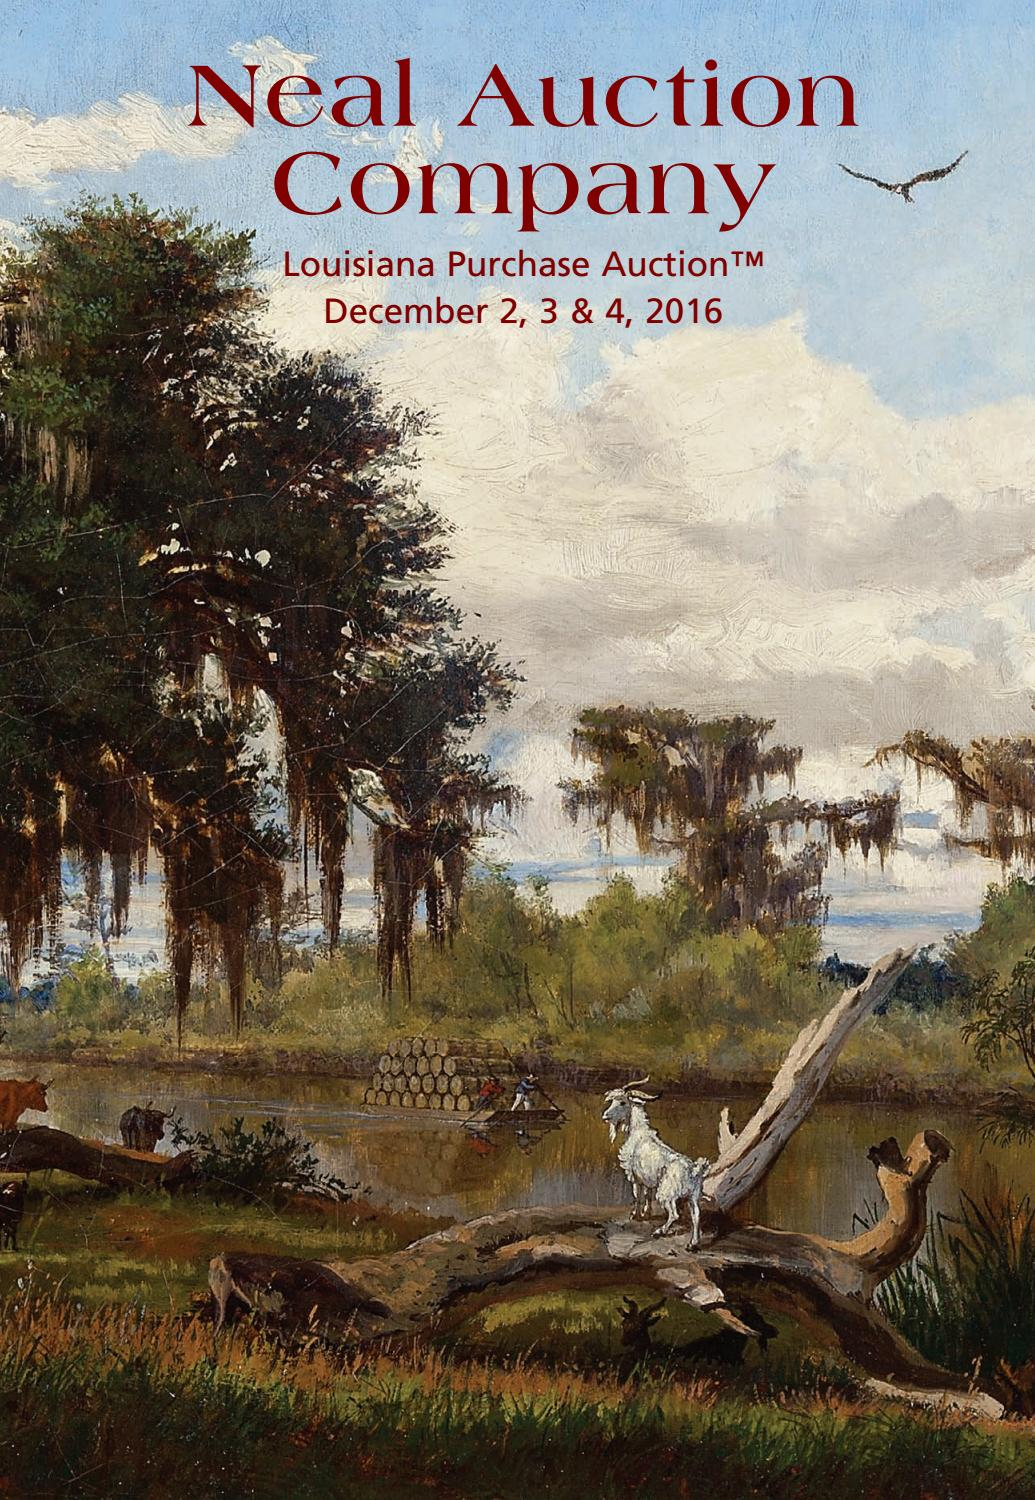 Carondelet Orthopaedic Surgeons Kansas City Howrah Bridge Songs Free December 2 3 4 2016 Louisiana Purchase Auction By Neal Issuu